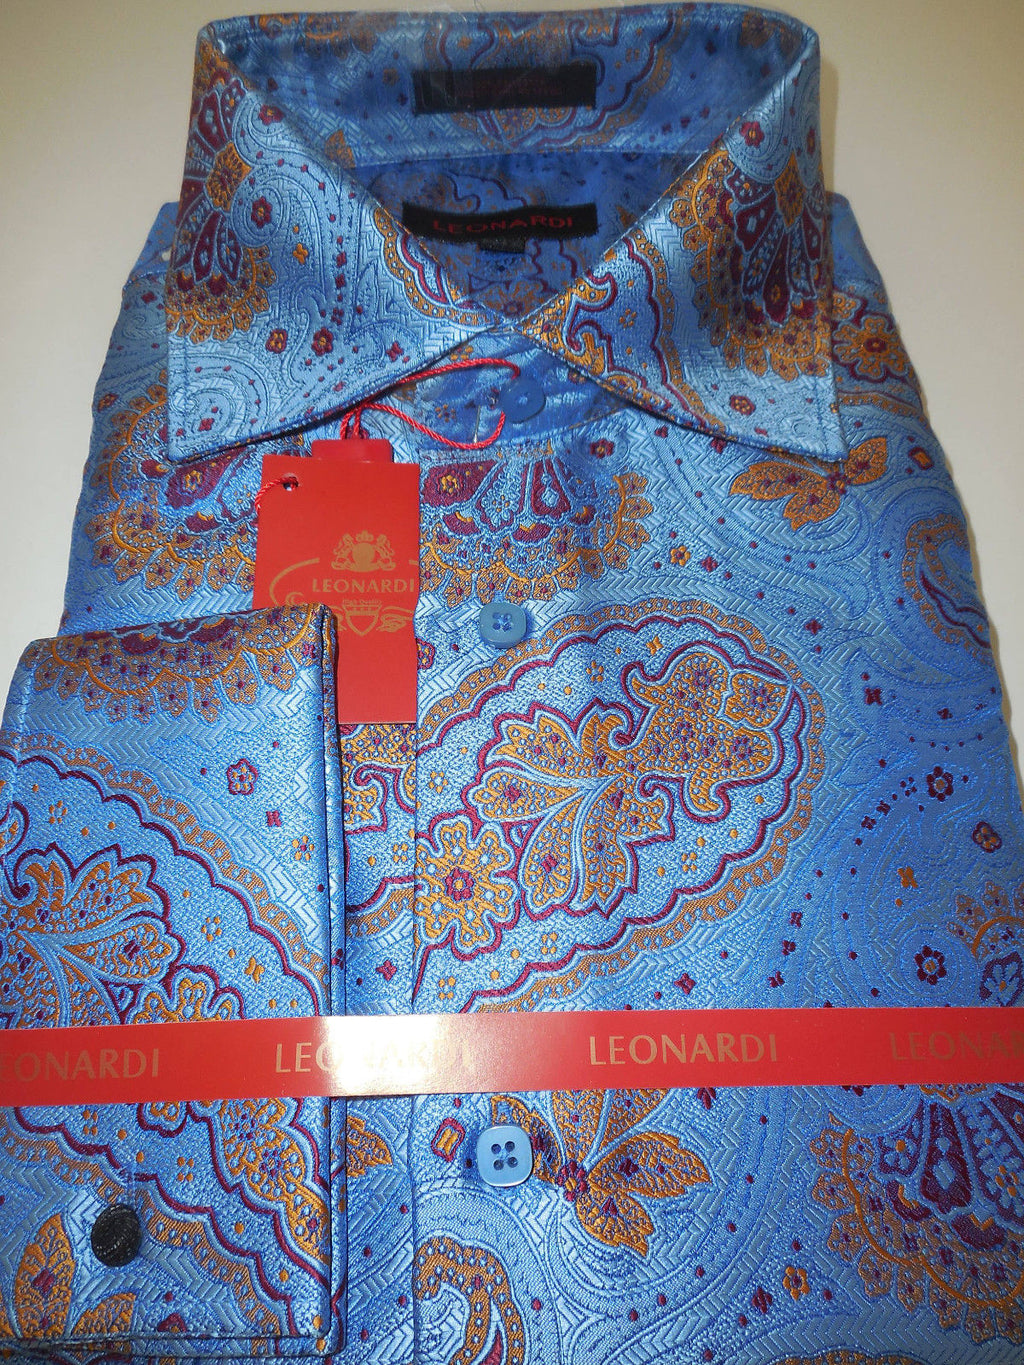 Mens Gorgeous Periwinkle Blue Leonardi Cool Paisley French Cuff Shirt Style 399 - Nader Fashion Las Vegas